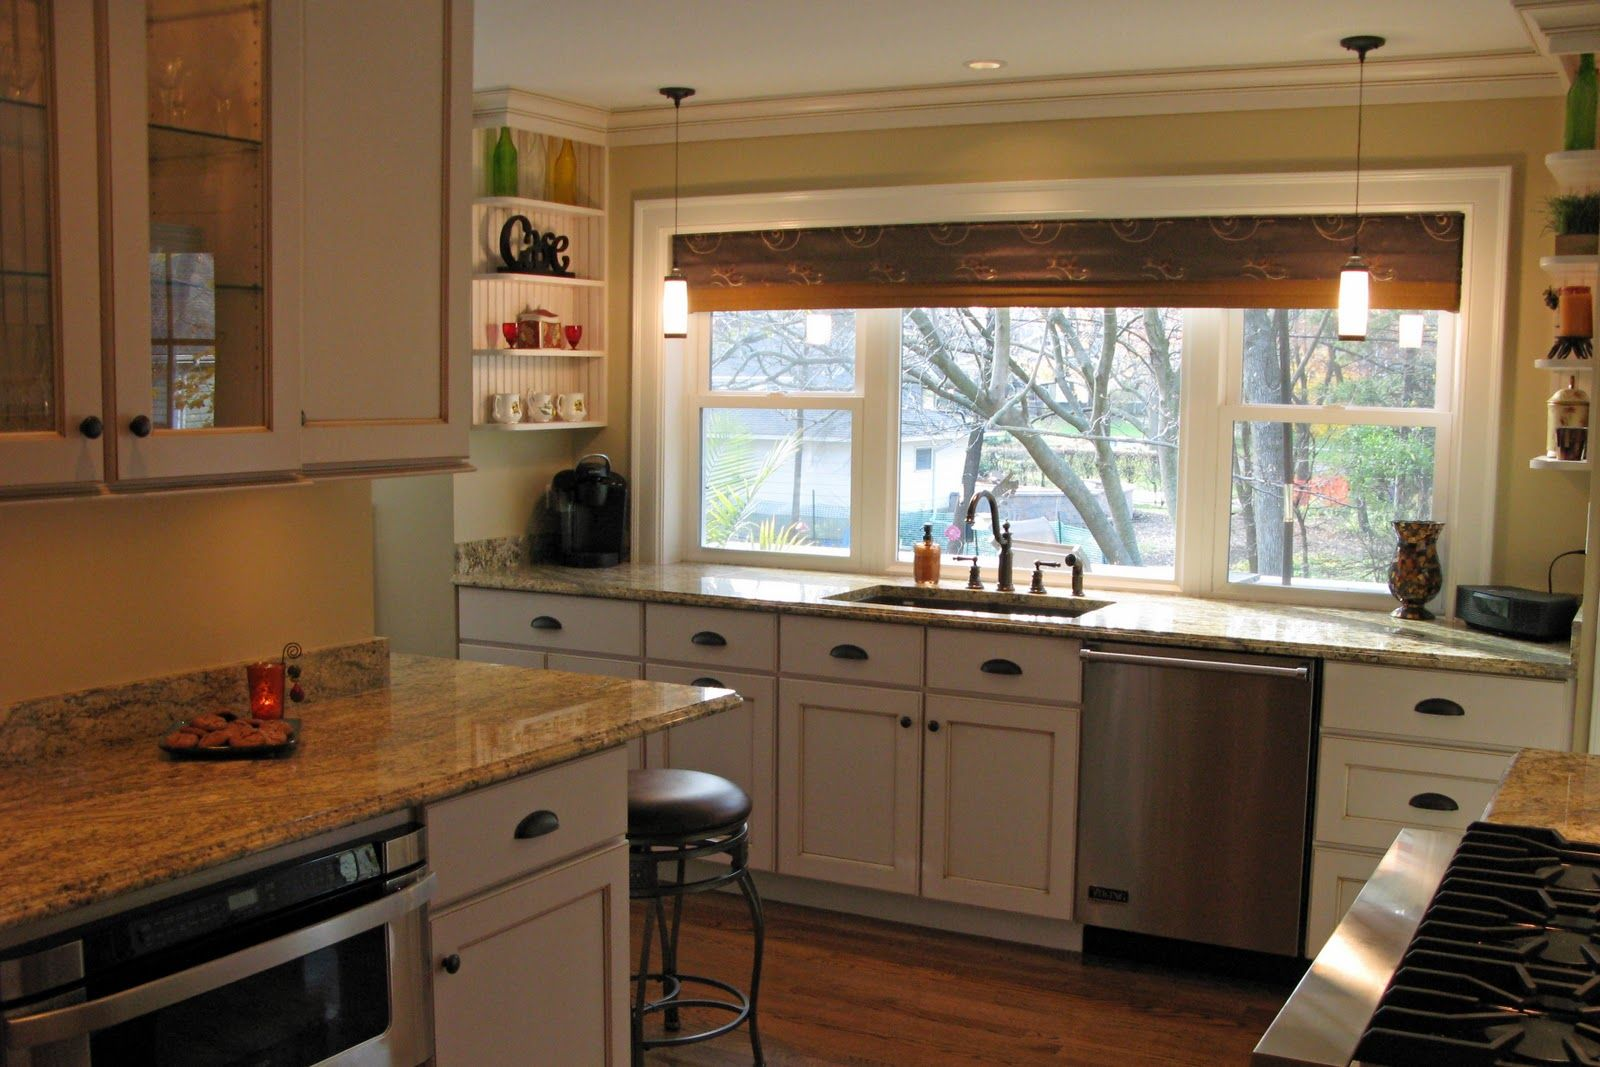 Kitchen Sink U0026 Stove On Same Wall With Windows Pictures | And Here Is A View